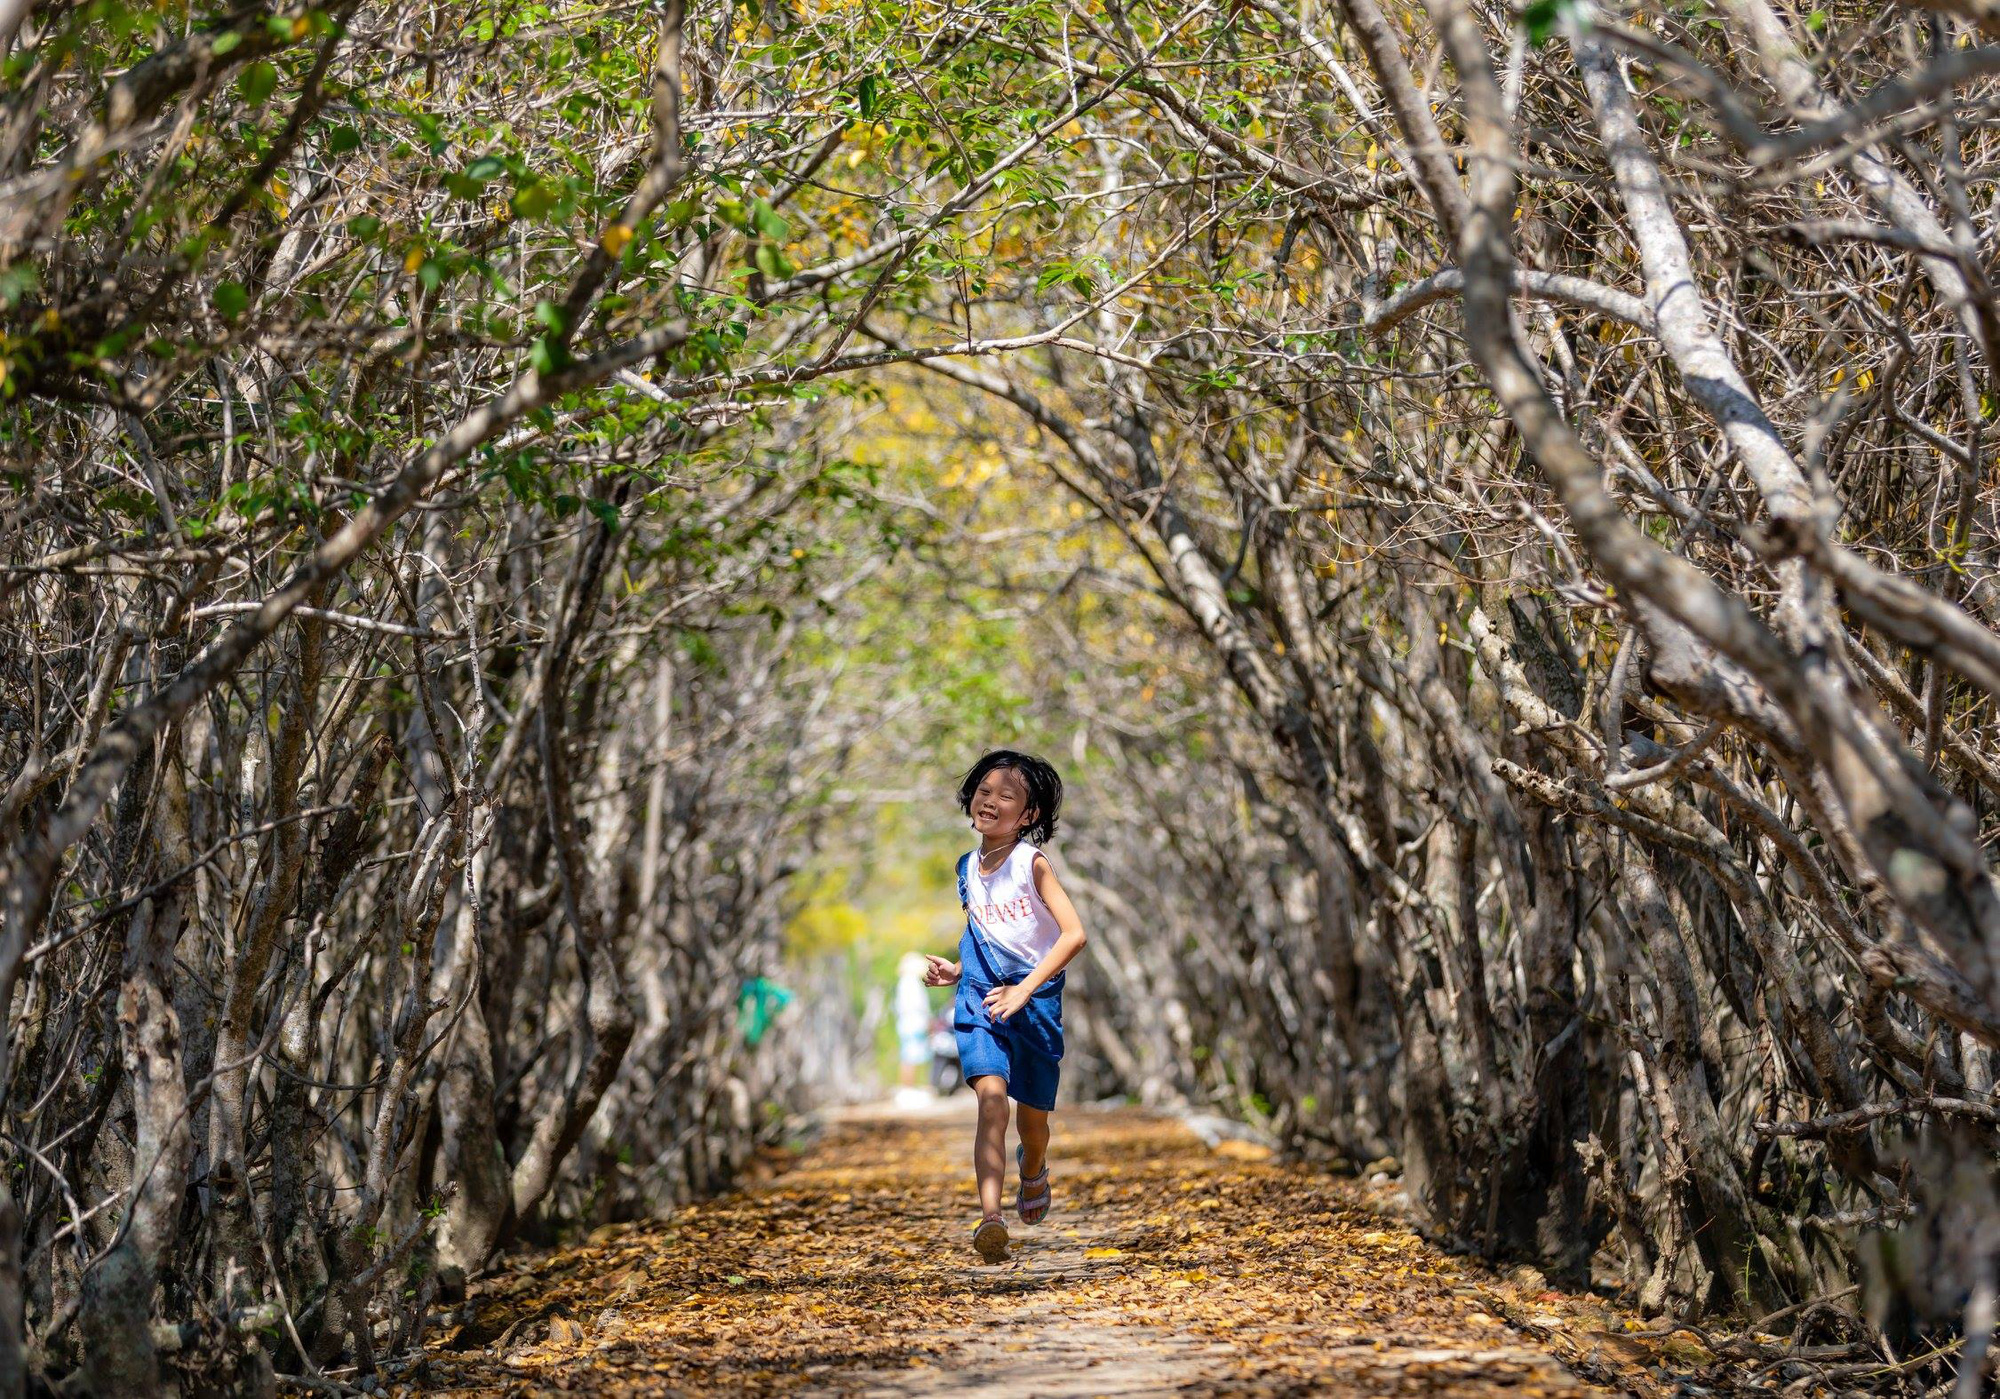 A kid runs on a concrete road leading to a mangrove forest in Huong Tra District, Thua Thien-Hue Province, Vietnam. Photo: Kelvin Long / Tuoi Tre